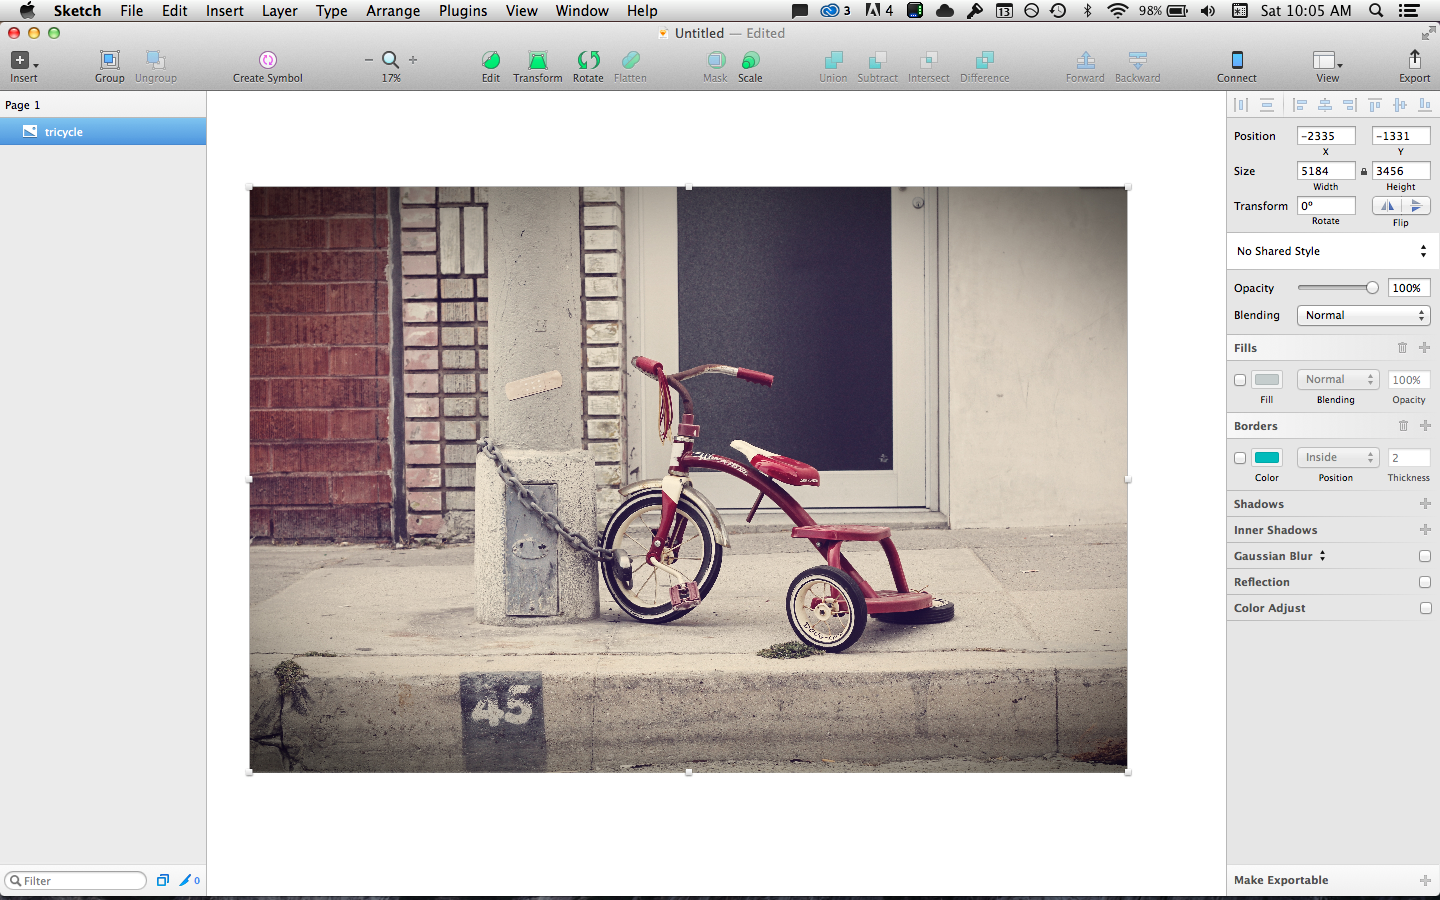 How to Create a Big Blurry Image with Photoshop, Illustrator, or Sketch